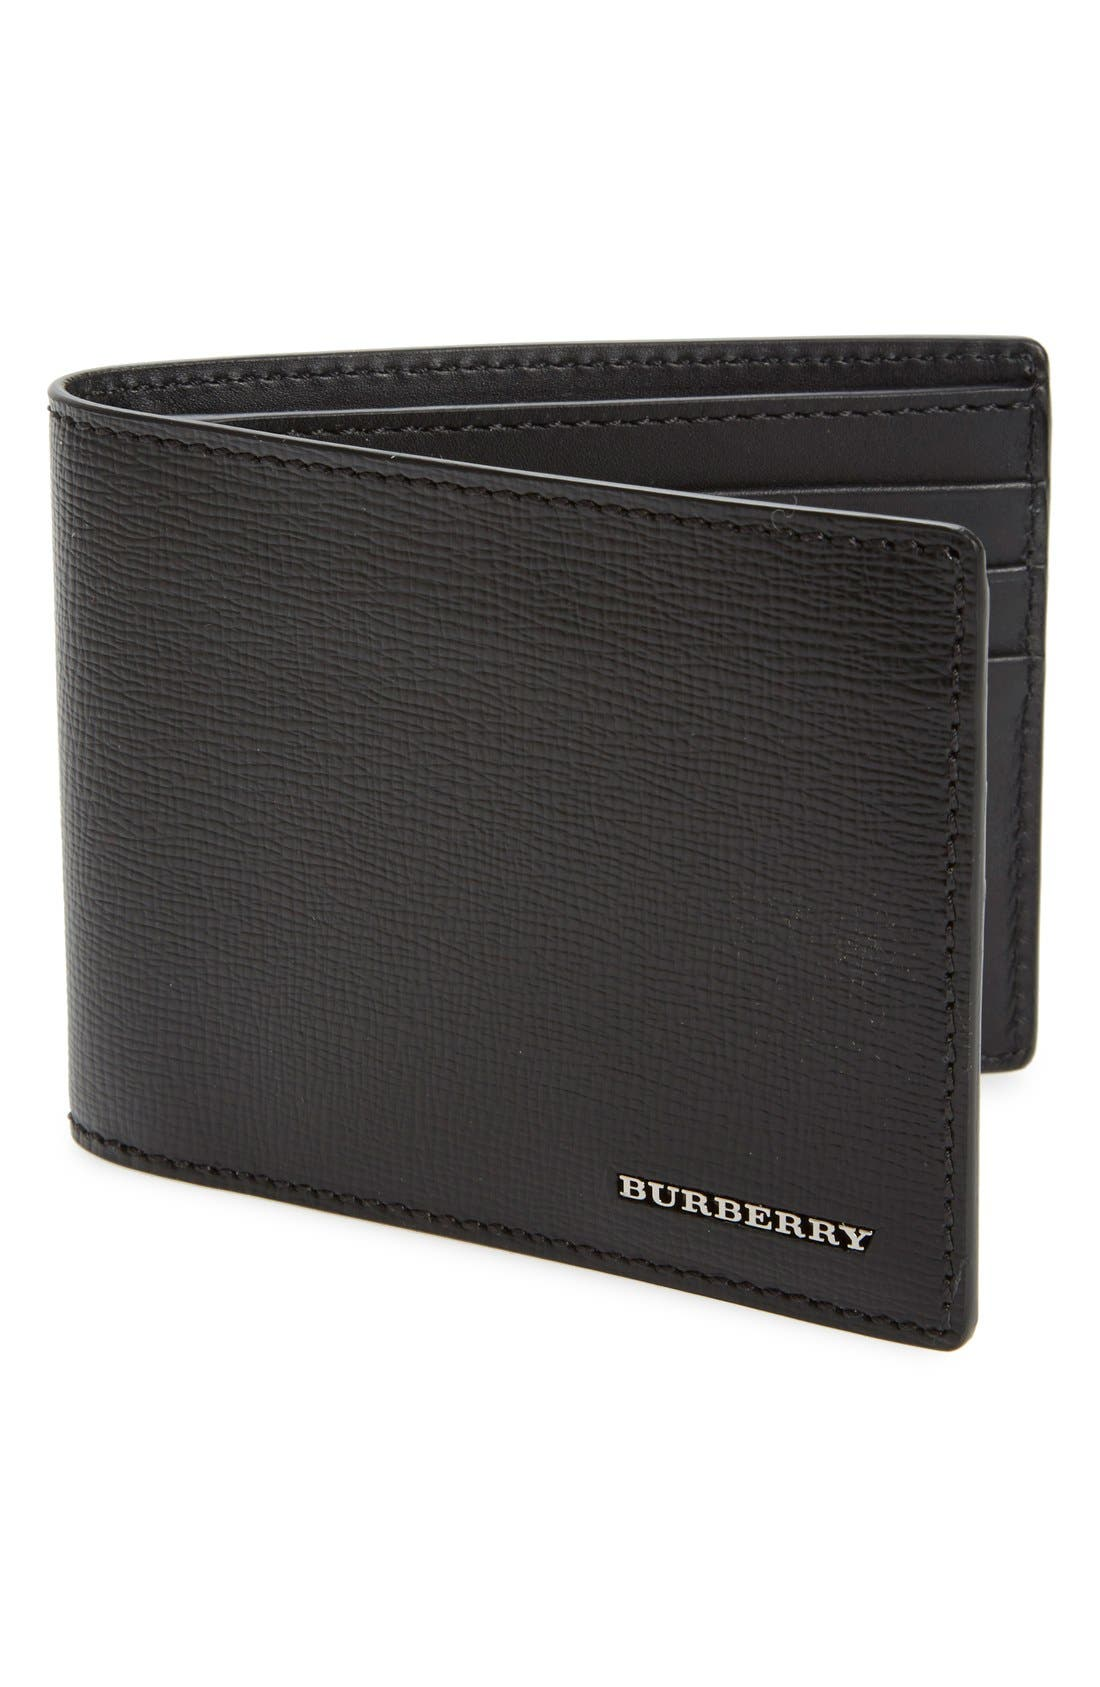 Burberry 'New London' Calfskin Leather Bifold Wallet